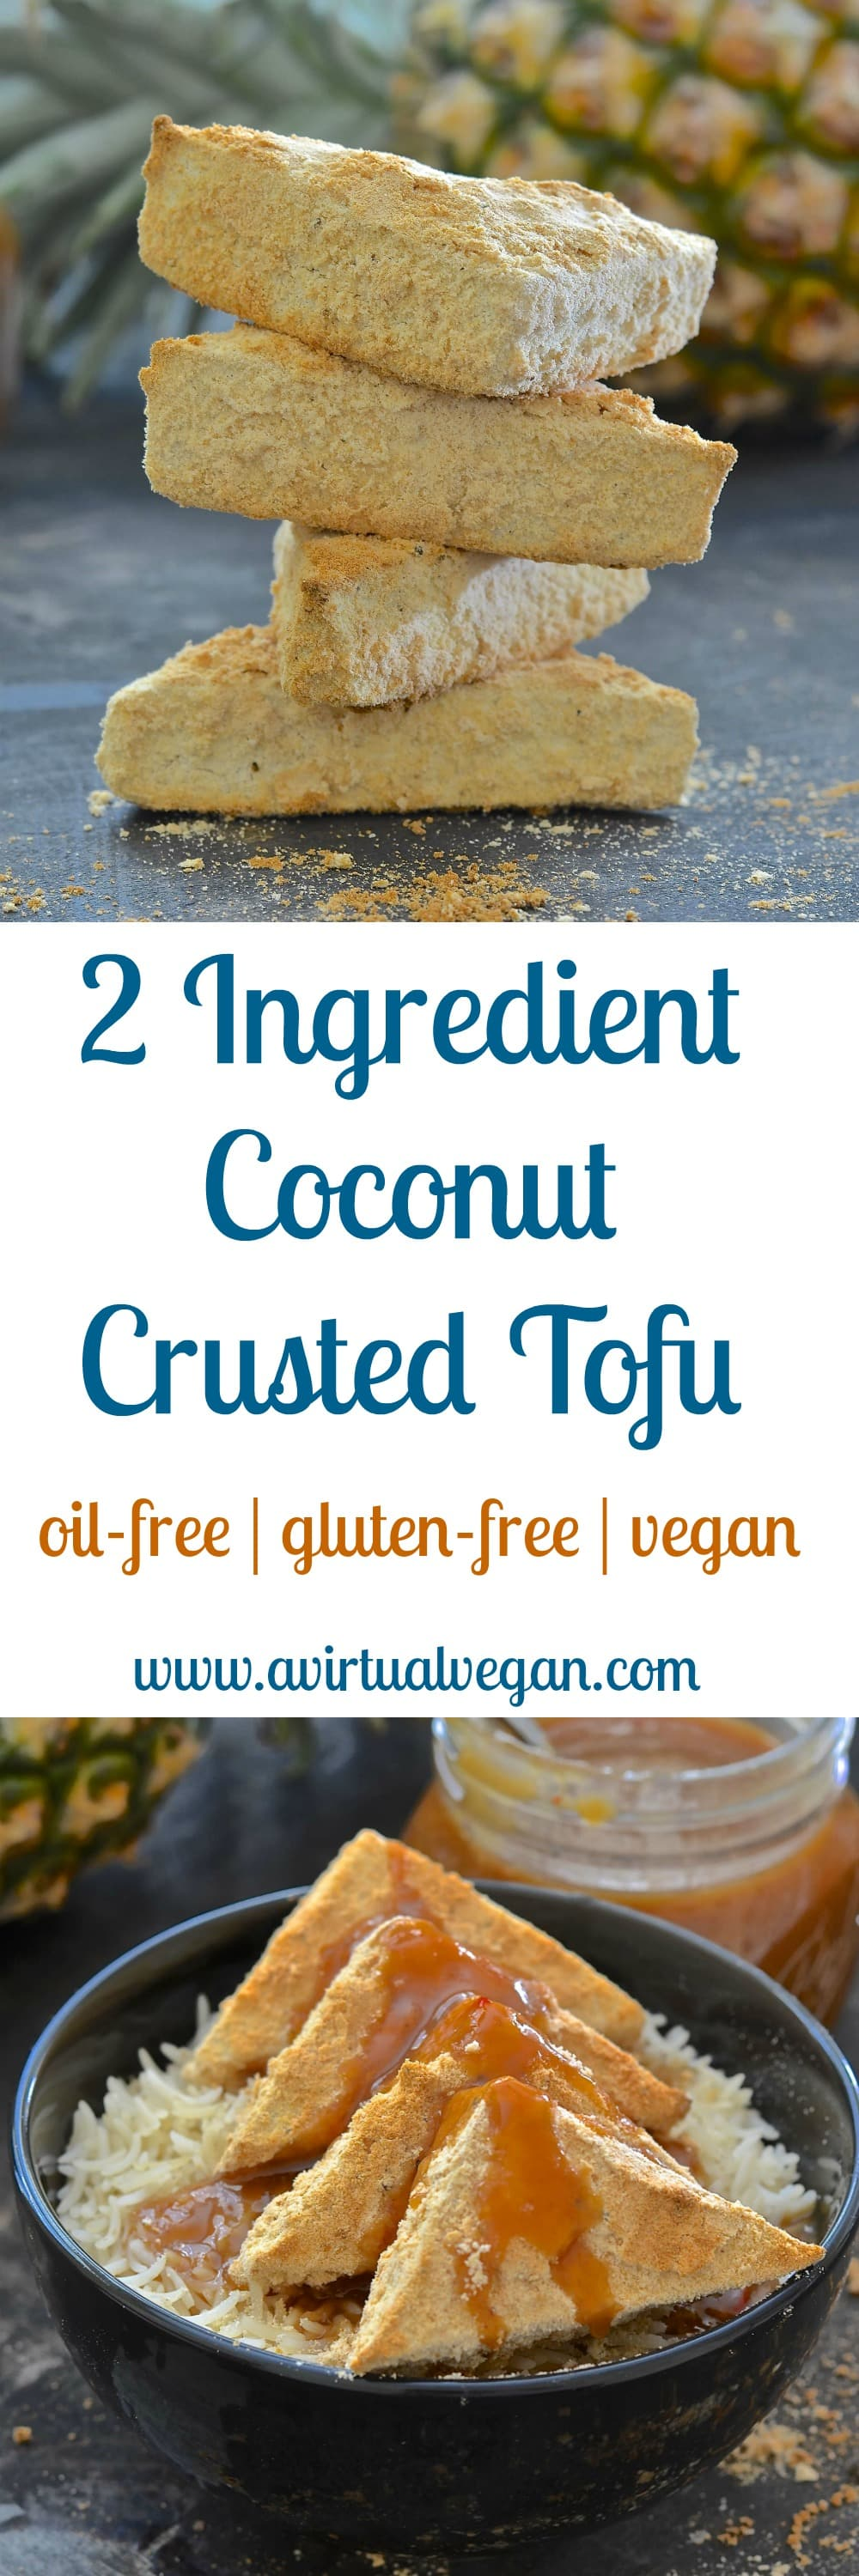 Simplicity at it's best! With just two ingredients & 35 minutes of your time you could be tucking into this delicious Coconut Crusted Tofu. Could it get any better? ……. Well yes actually…..Because it's gluten-free, oil-free, low fat and has 10 grams of protein per serving!